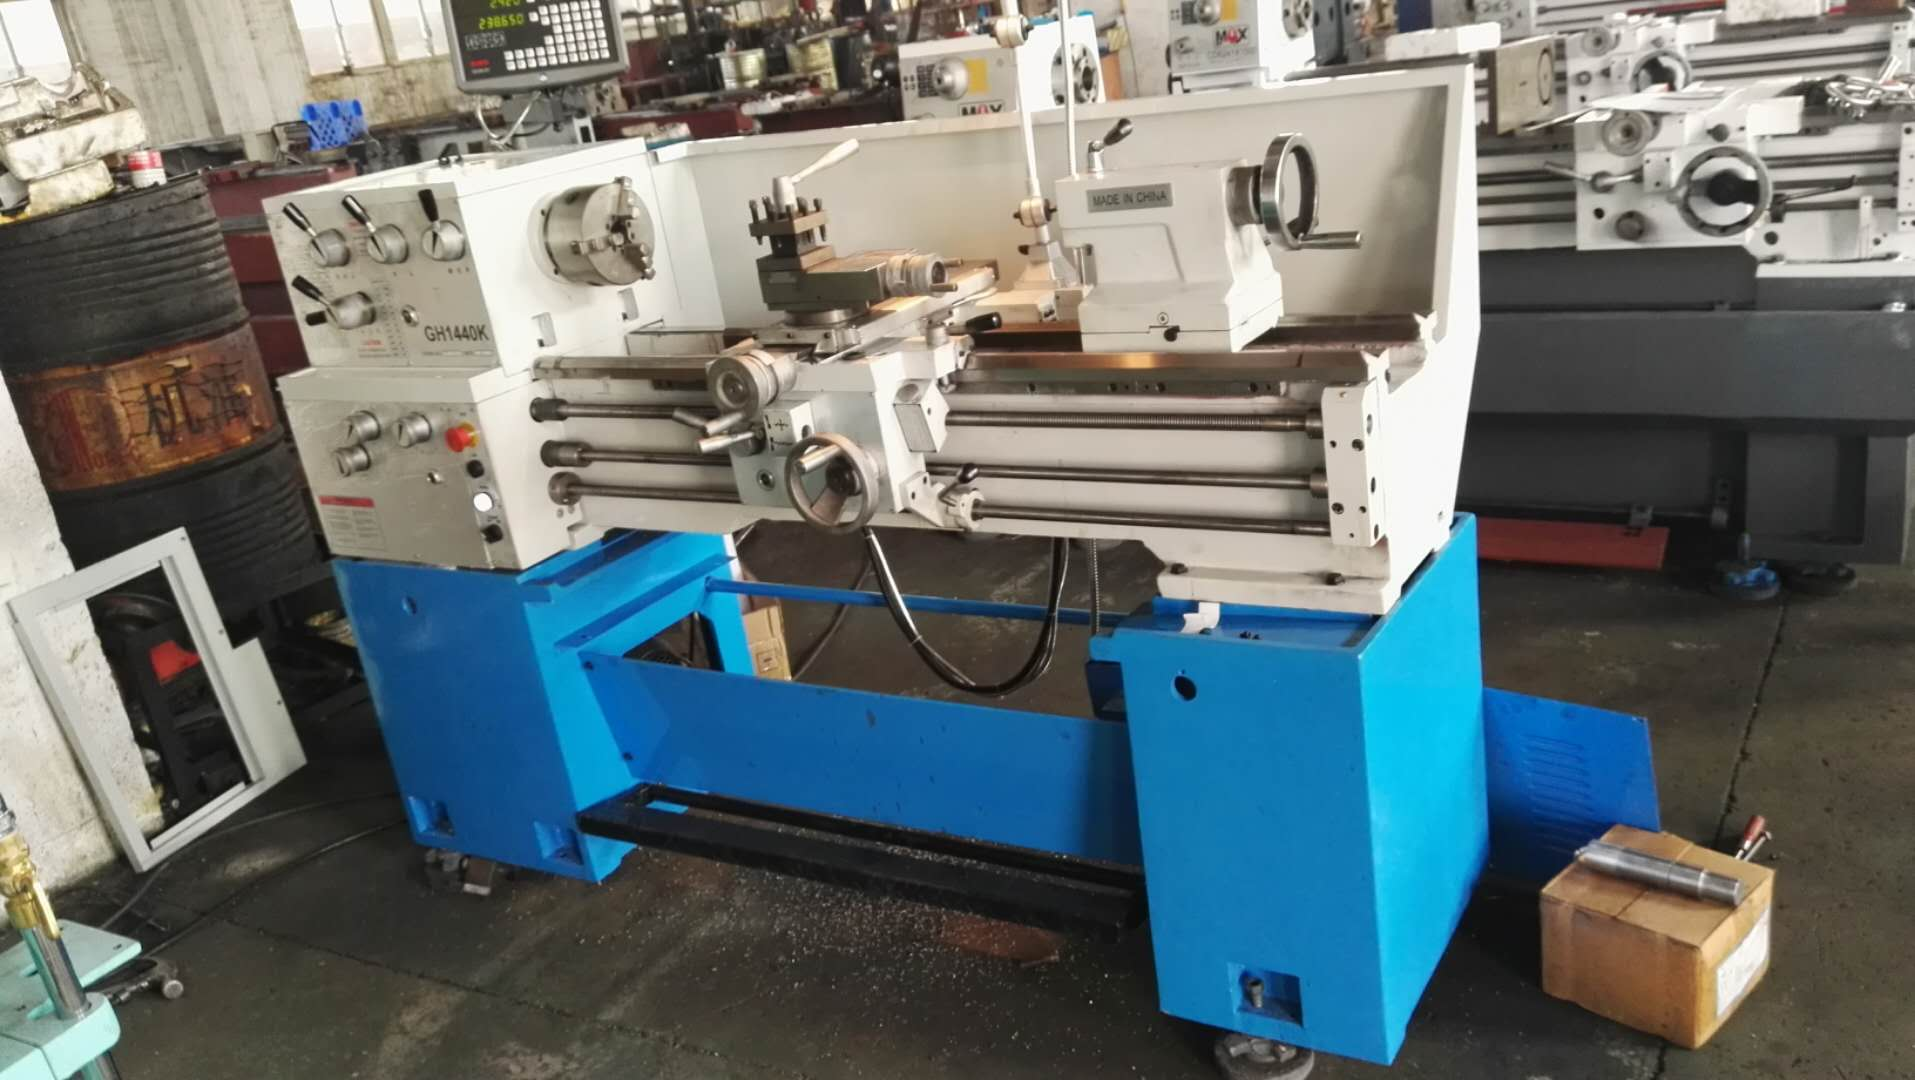 Lathe Machine Ready For Shipment